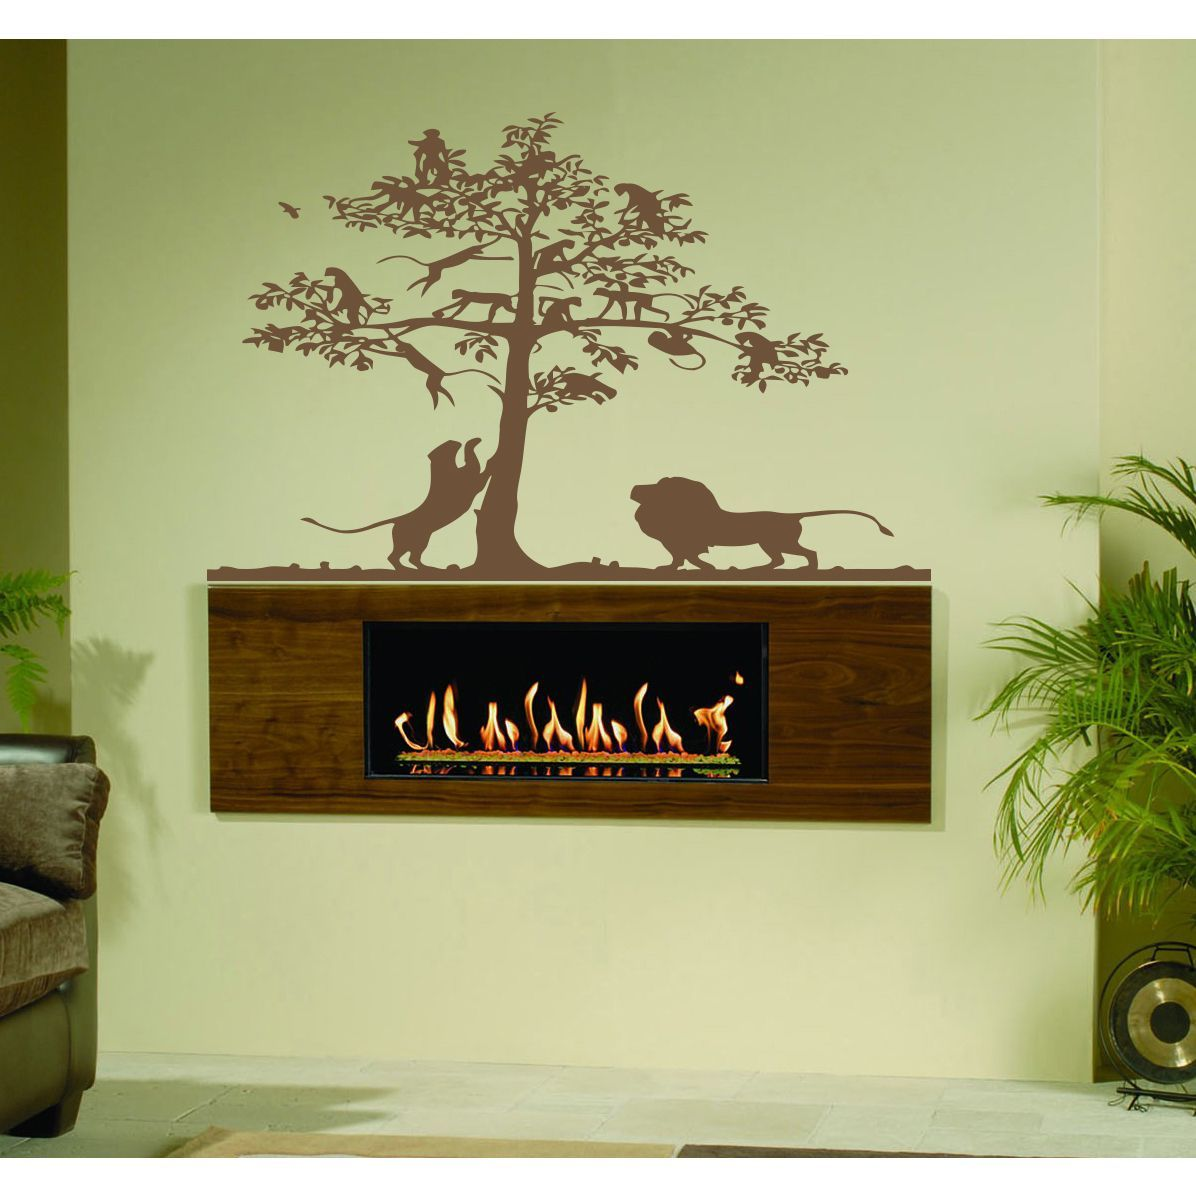 Safari Africa Nature Wall Art Sticker Decal | Products | Pinterest ...